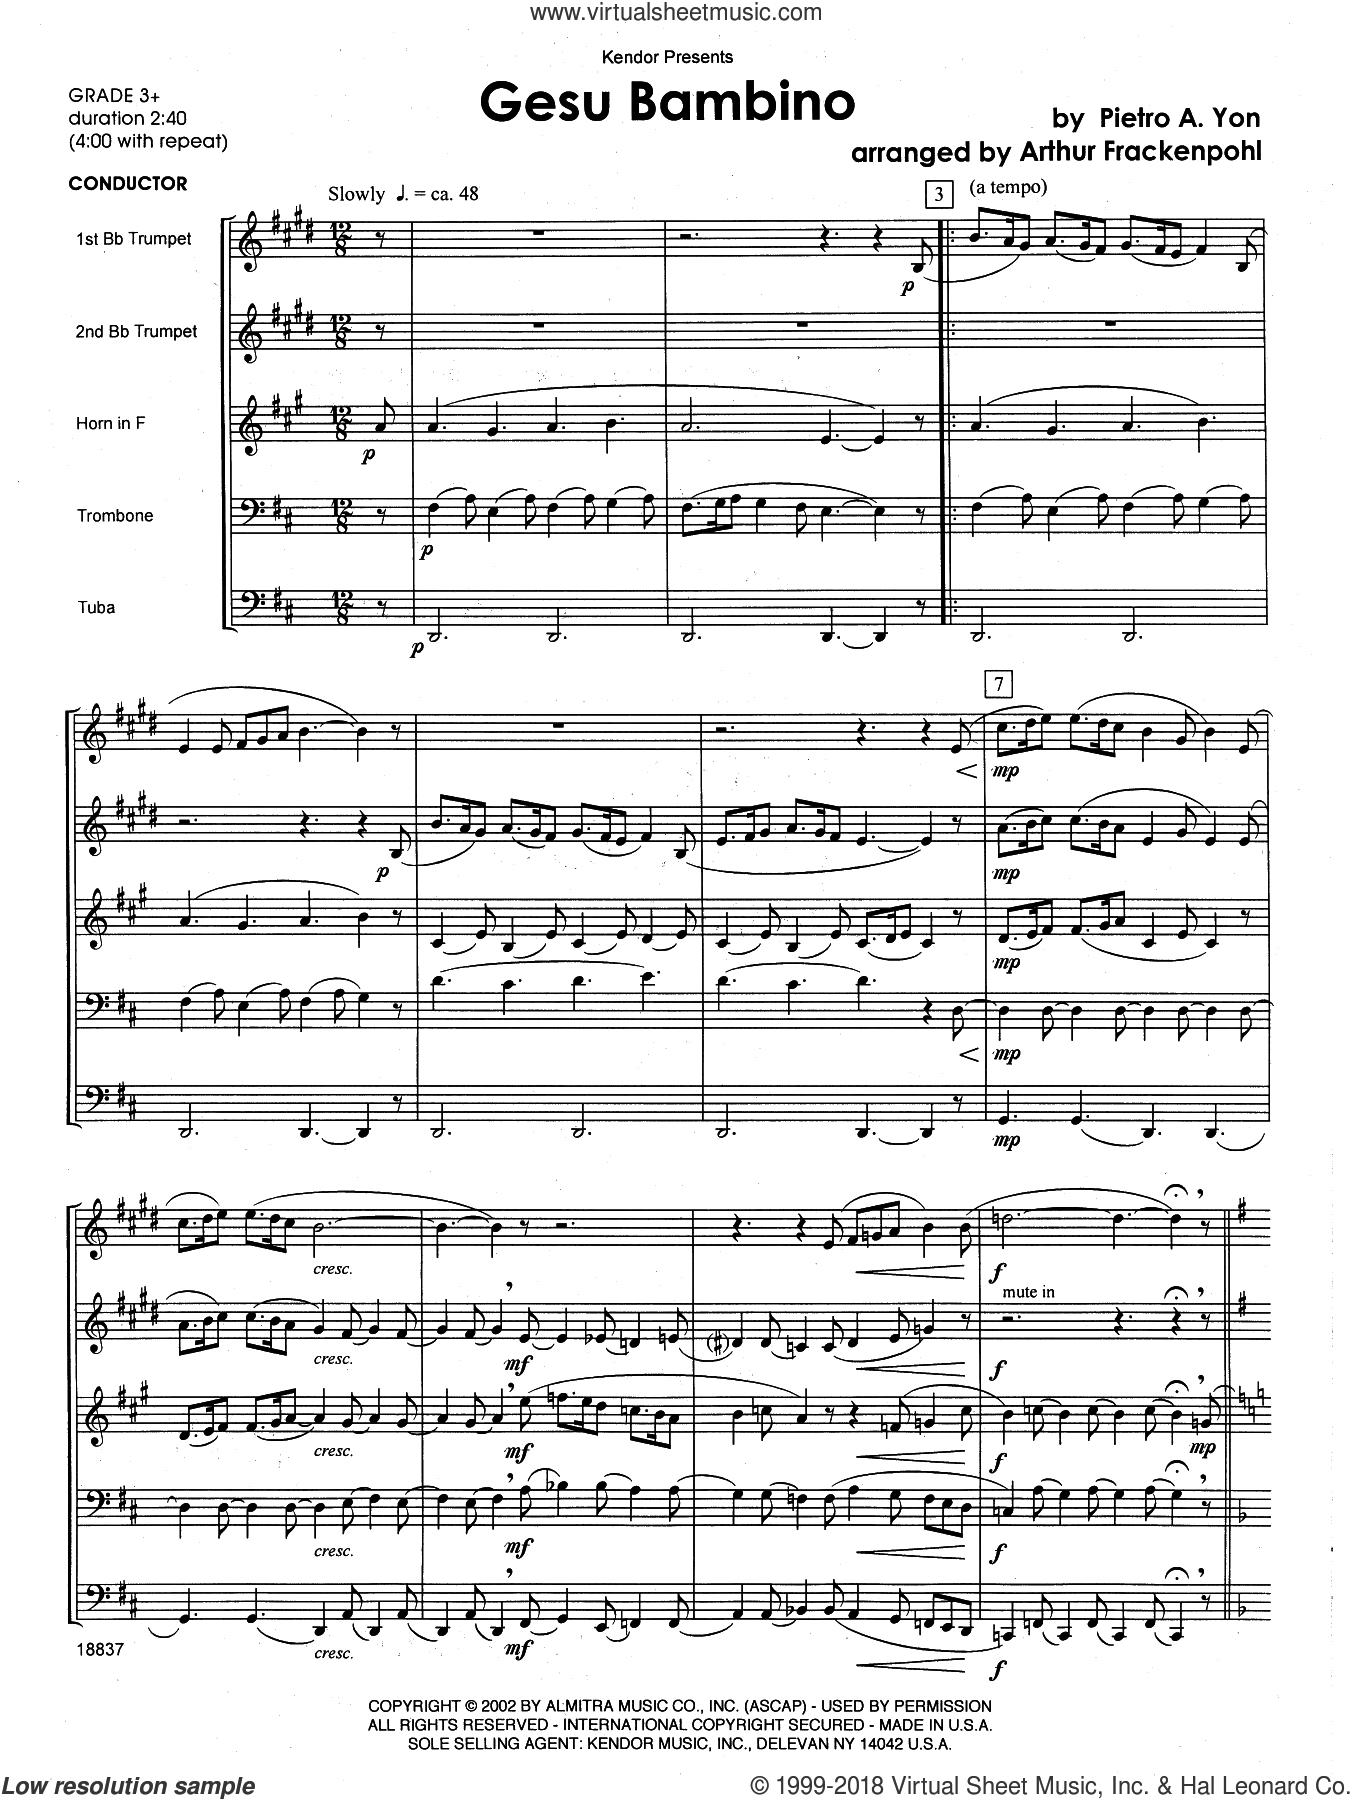 Gesu Bambino (COMPLETE) sheet music for brass quintet by Arthur Frackenpohl and Yon, intermediate skill level